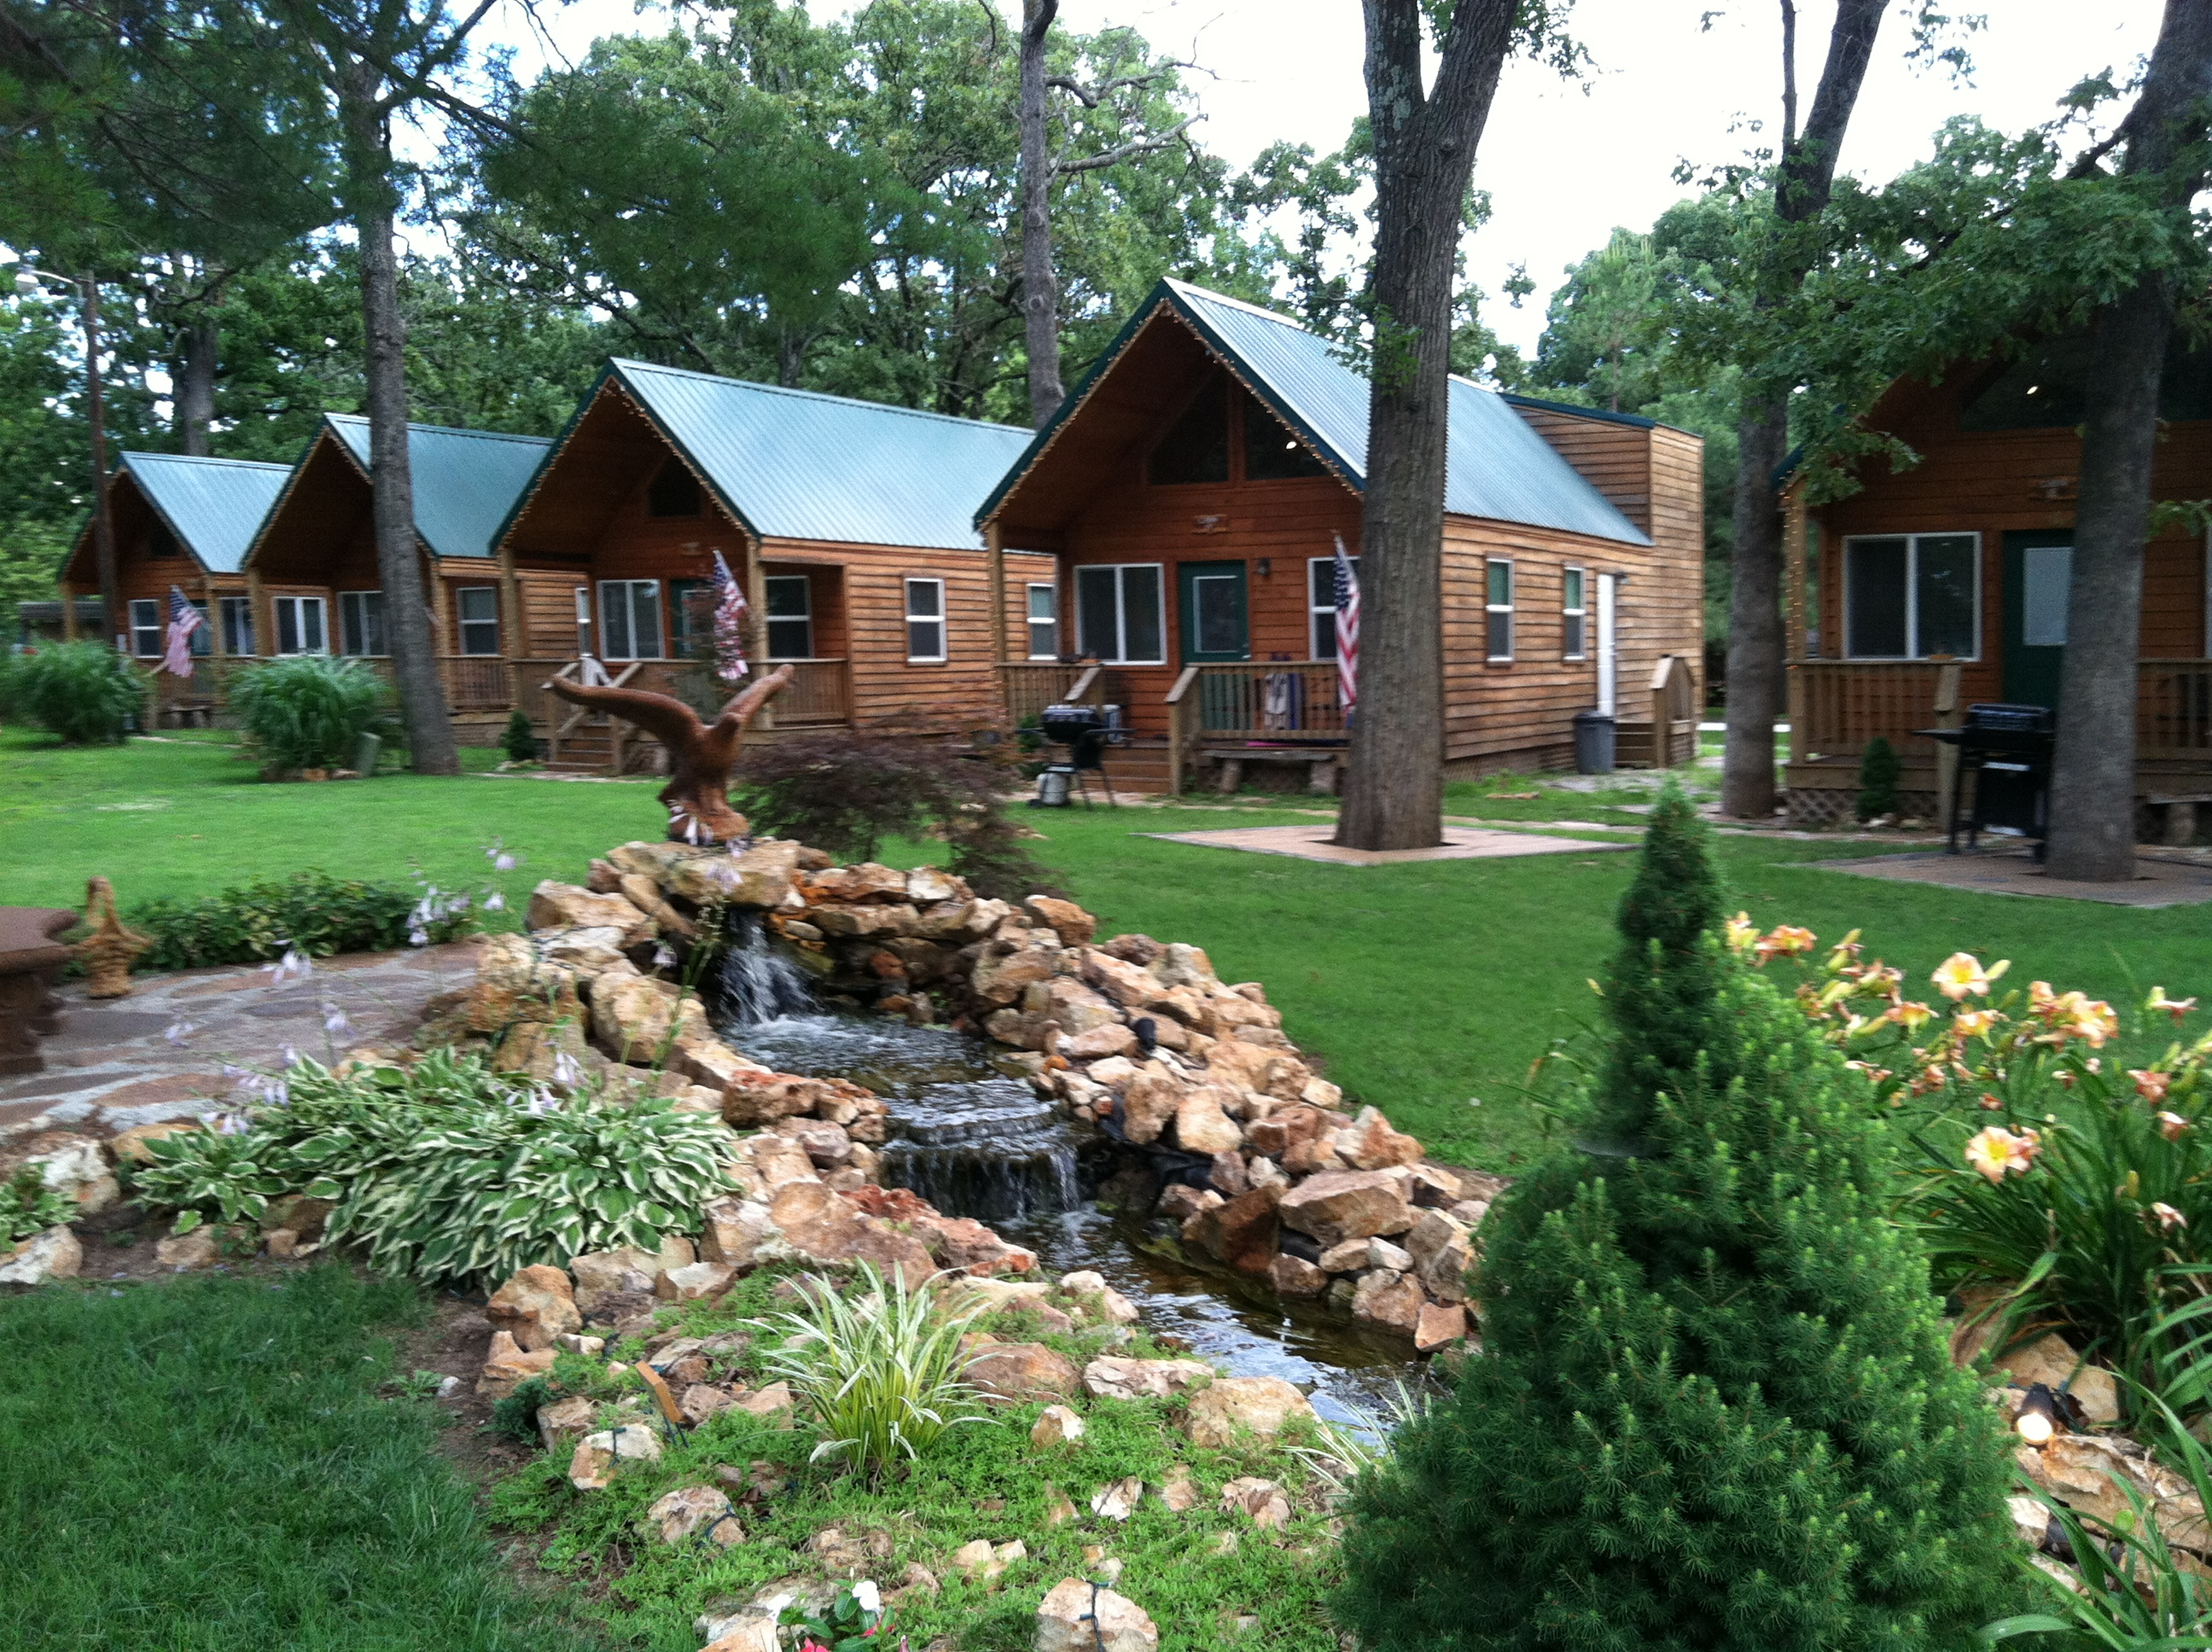 Lees Grand Lake Resortmore 24800 S 630 Rd Grove OK 74344 918 786 4289 Our Website Email Us